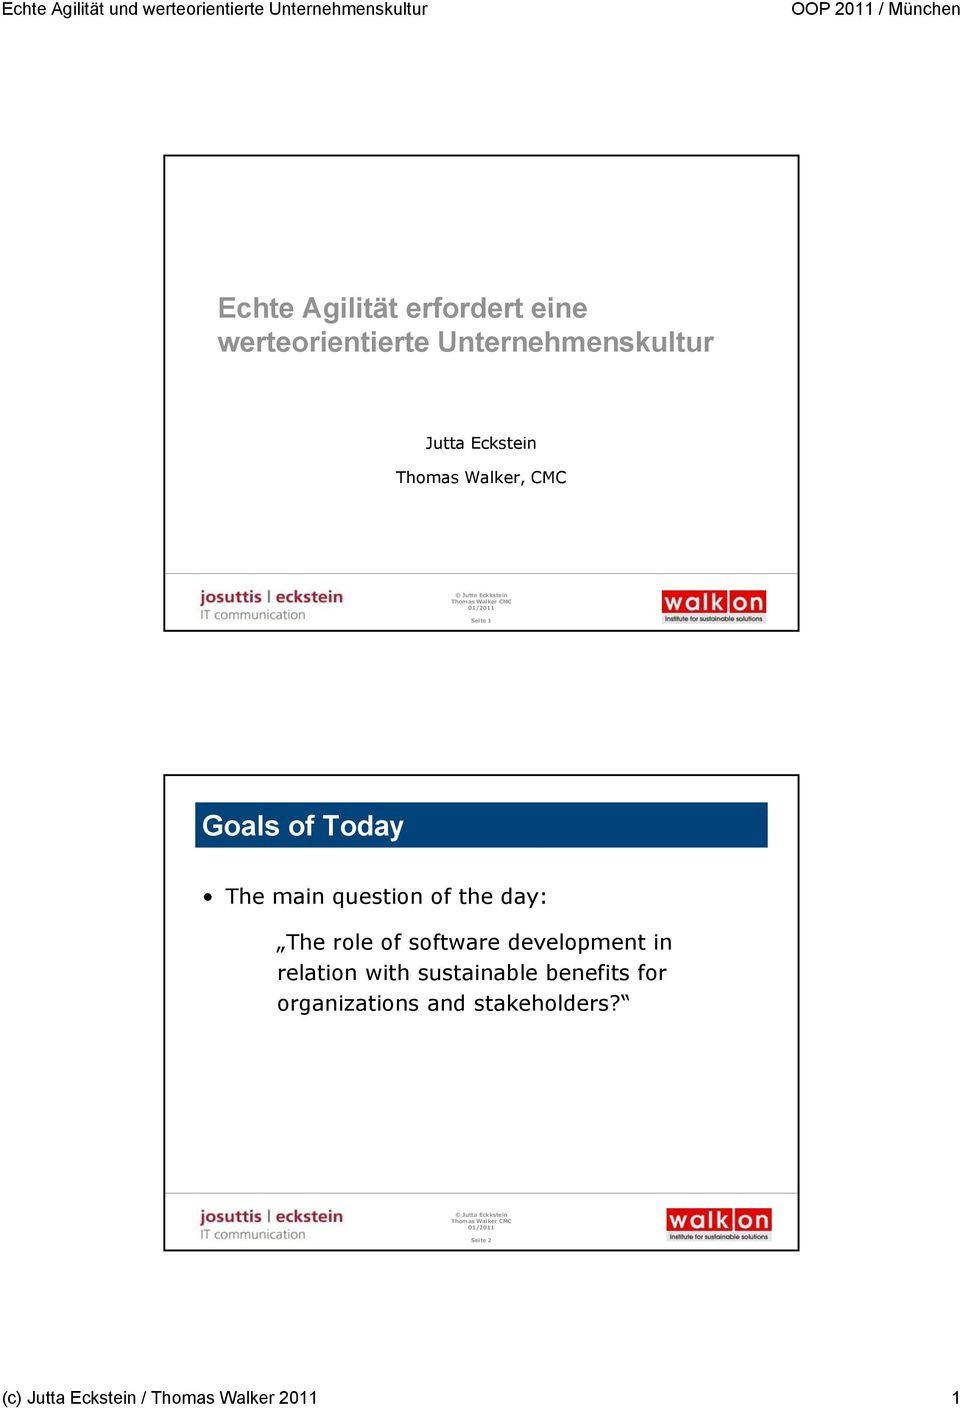 day: The role of software development in relation with sustainable benefits